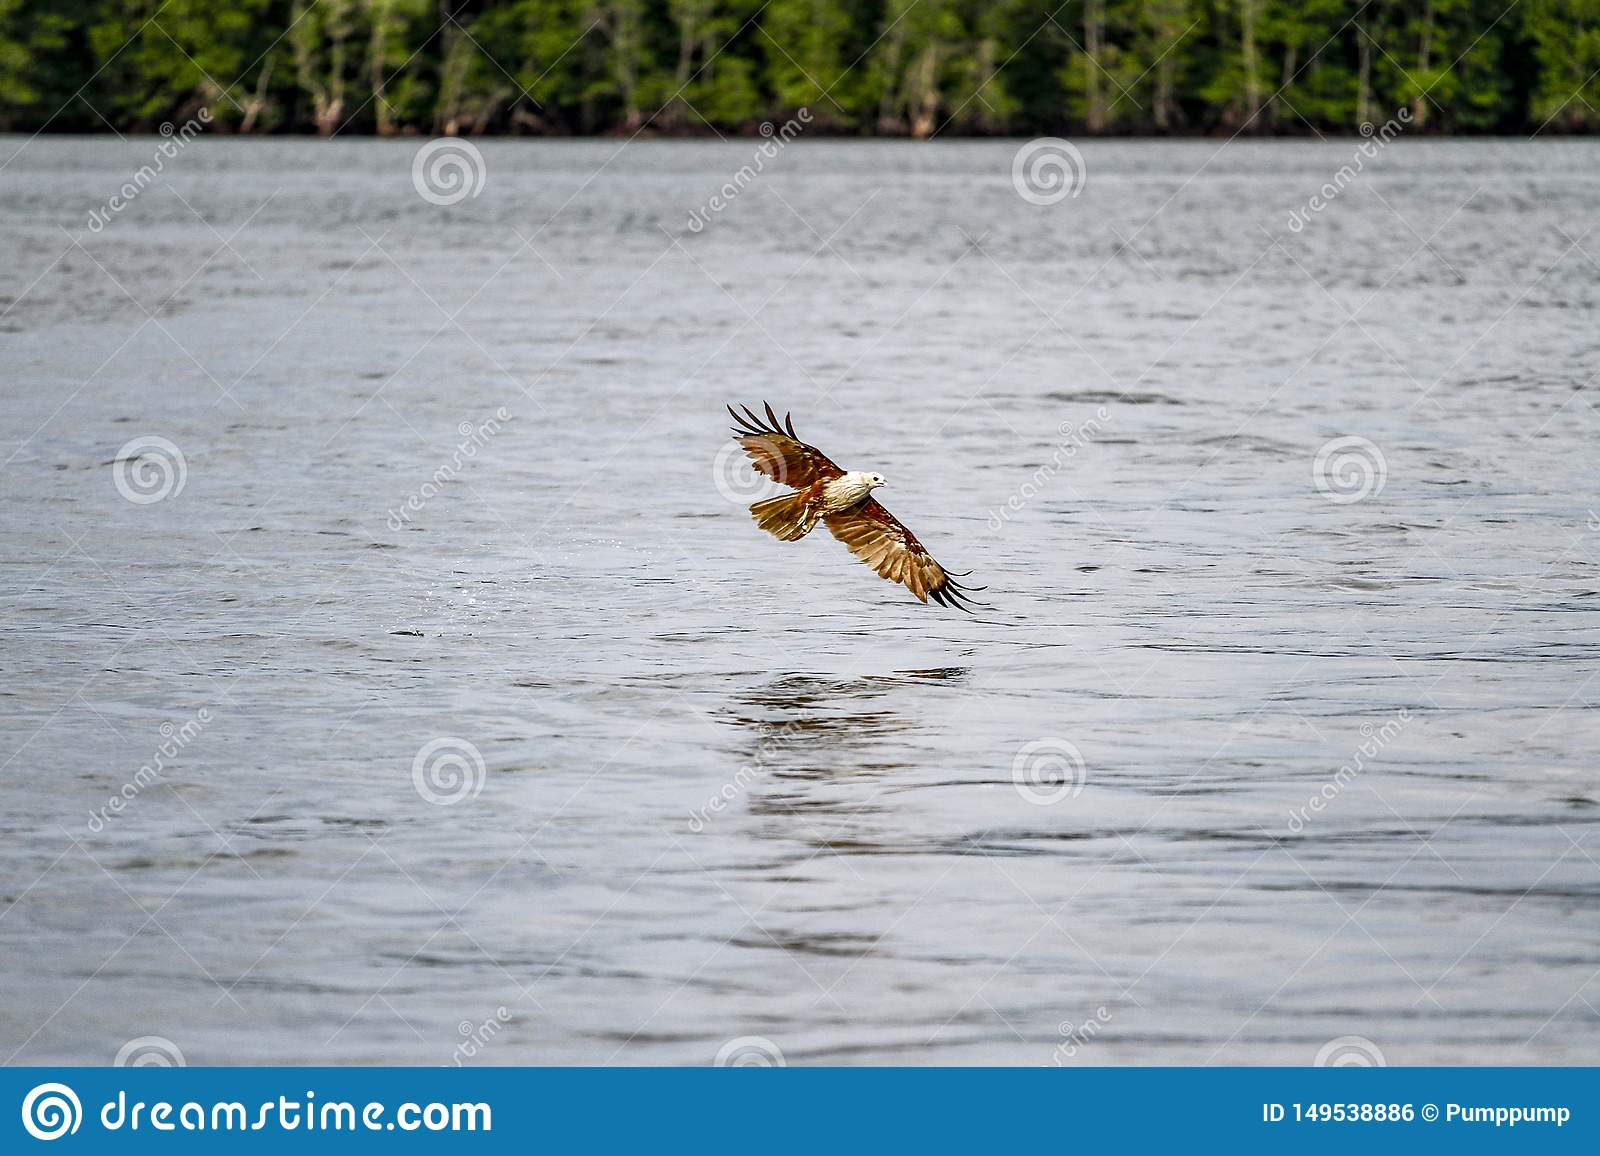 Red eagle on the sea in nature at thailand